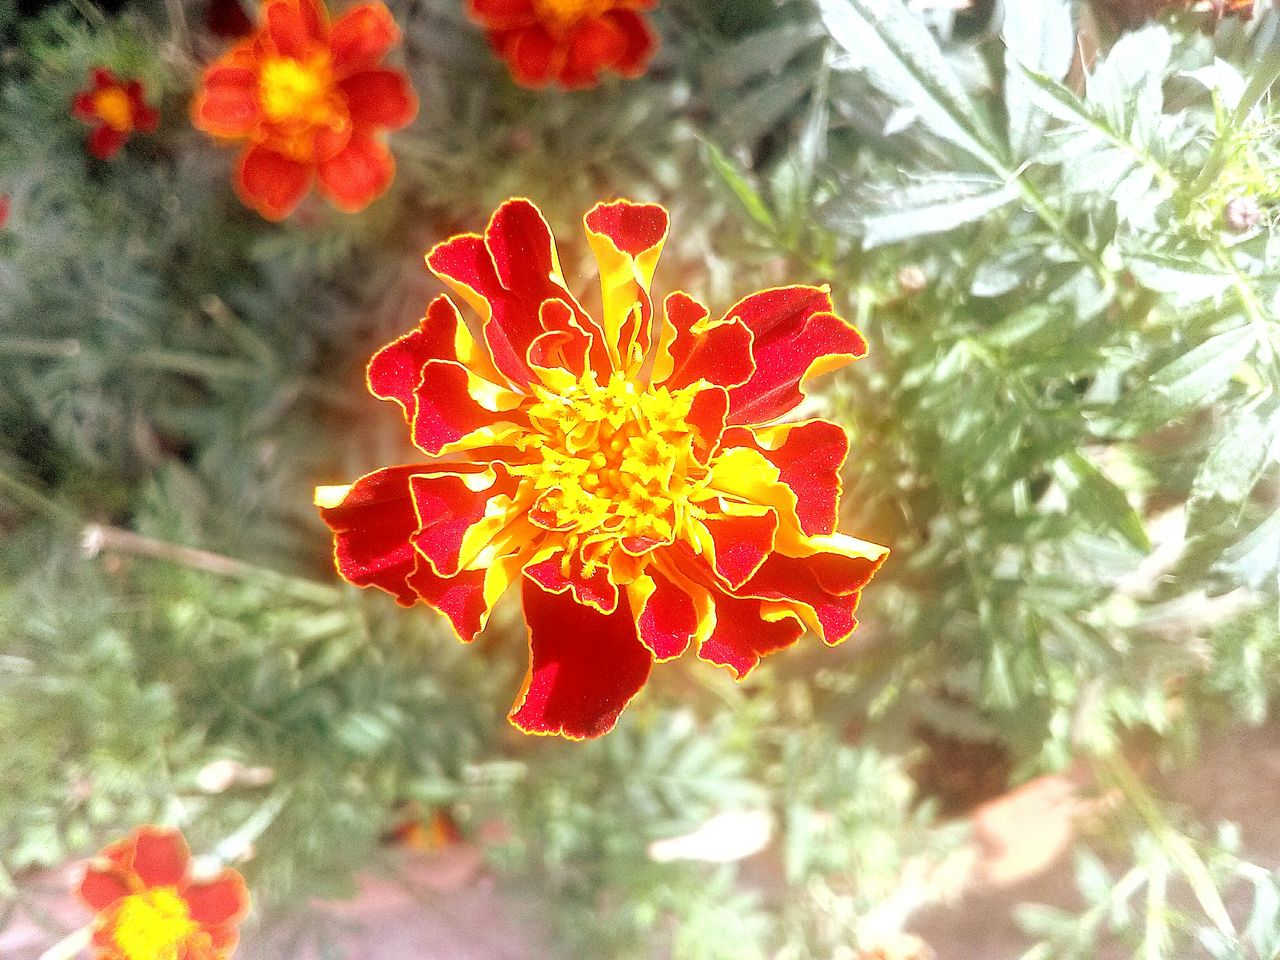 flower, nature, beauty in nature, petal, freshness, growth, outdoors, plant, focus on foreground, no people, day, flower head, fragility, blooming, close-up